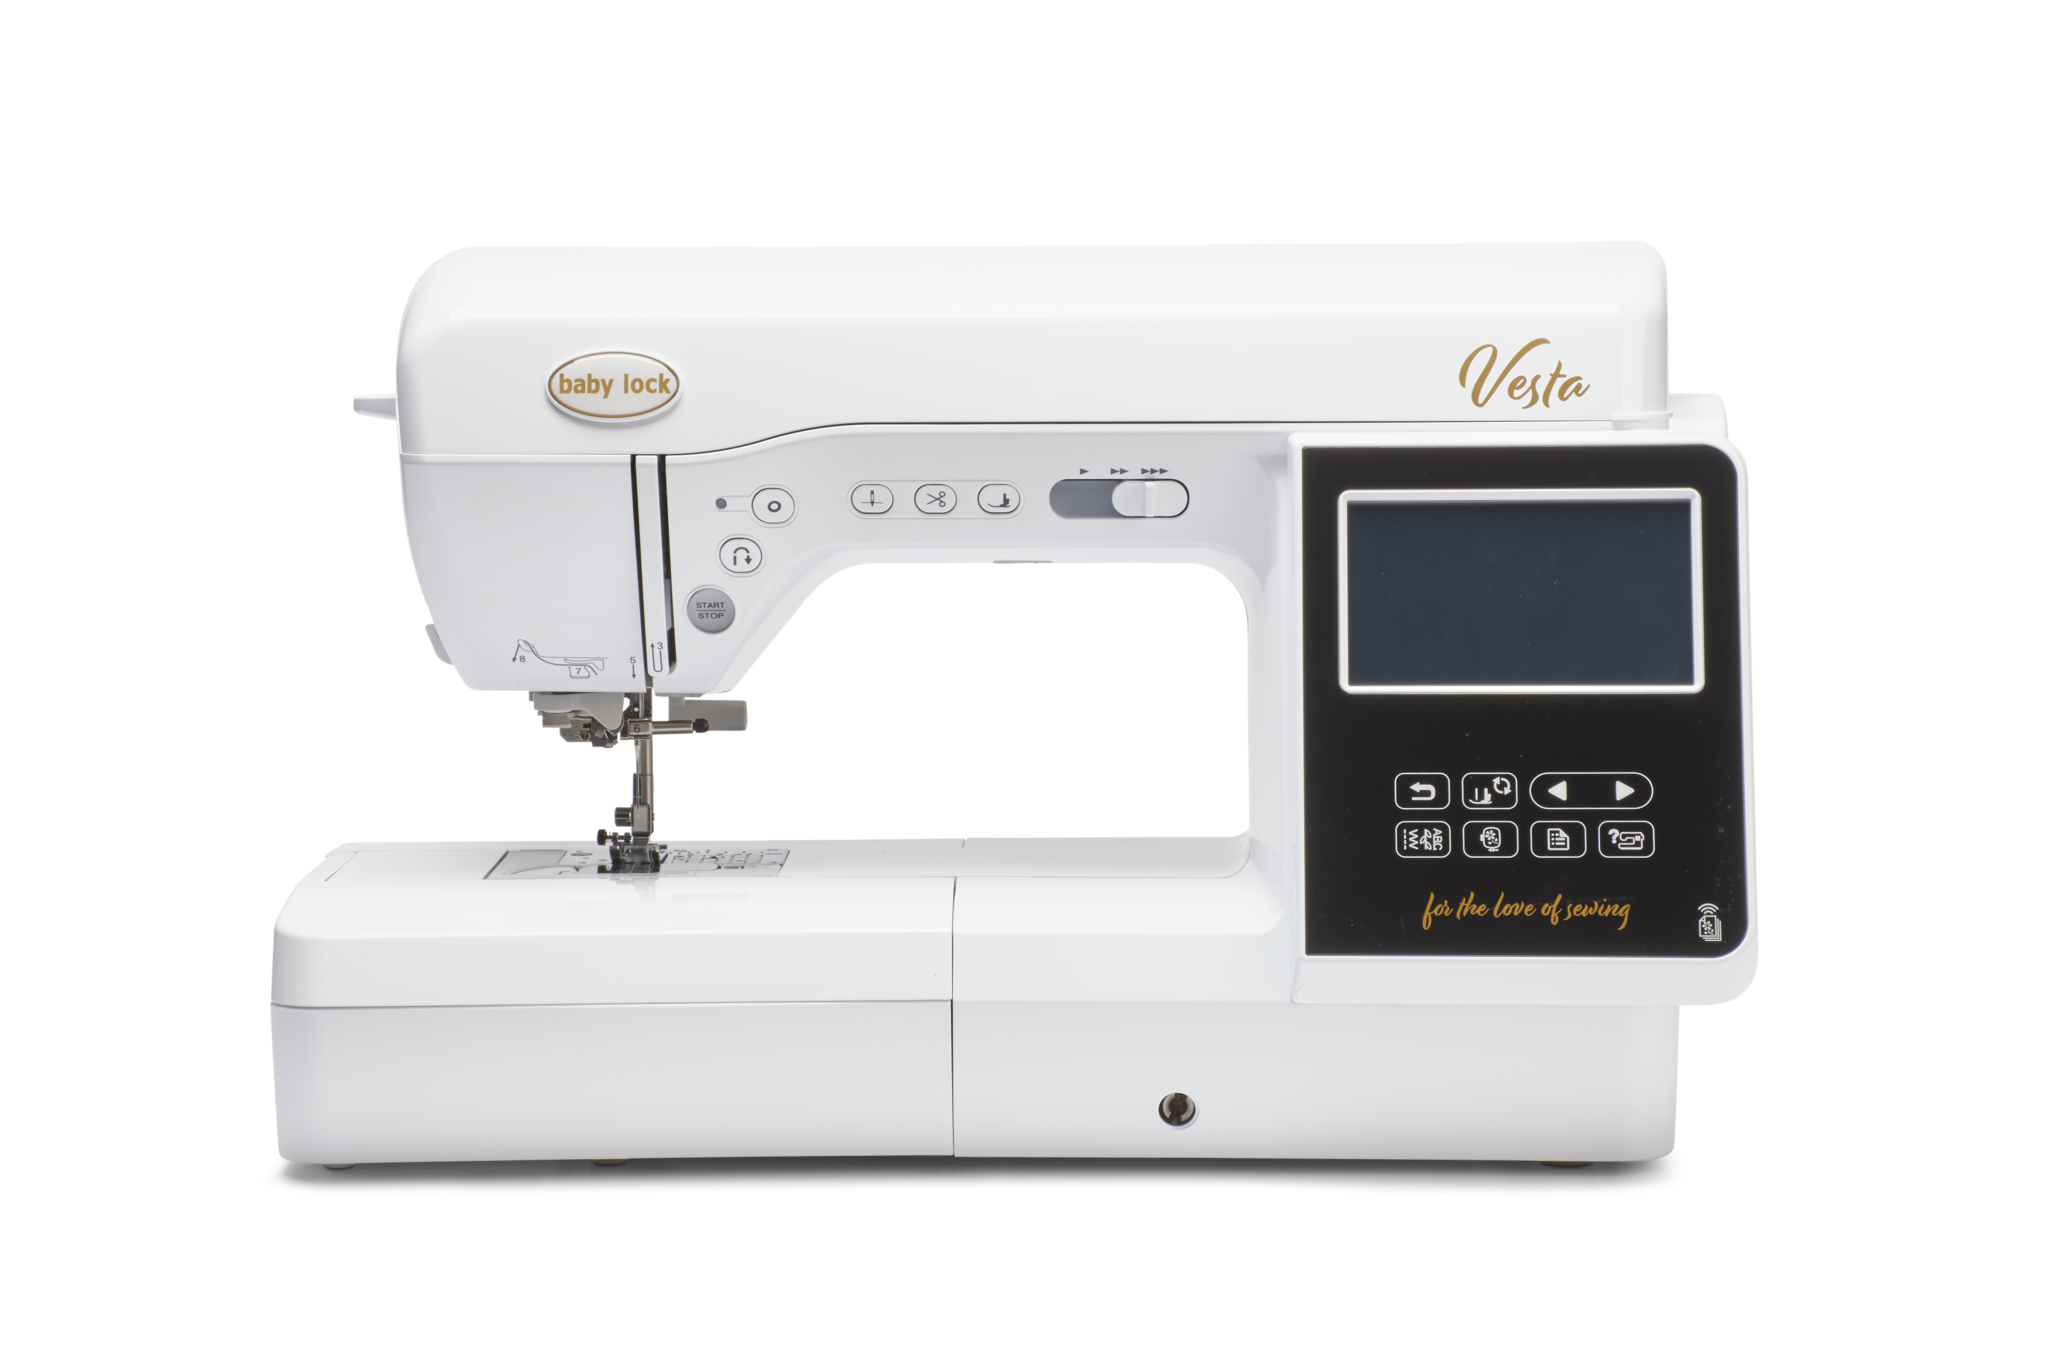 Baby Lock Vesta Sewing and Embroidery BLMVE